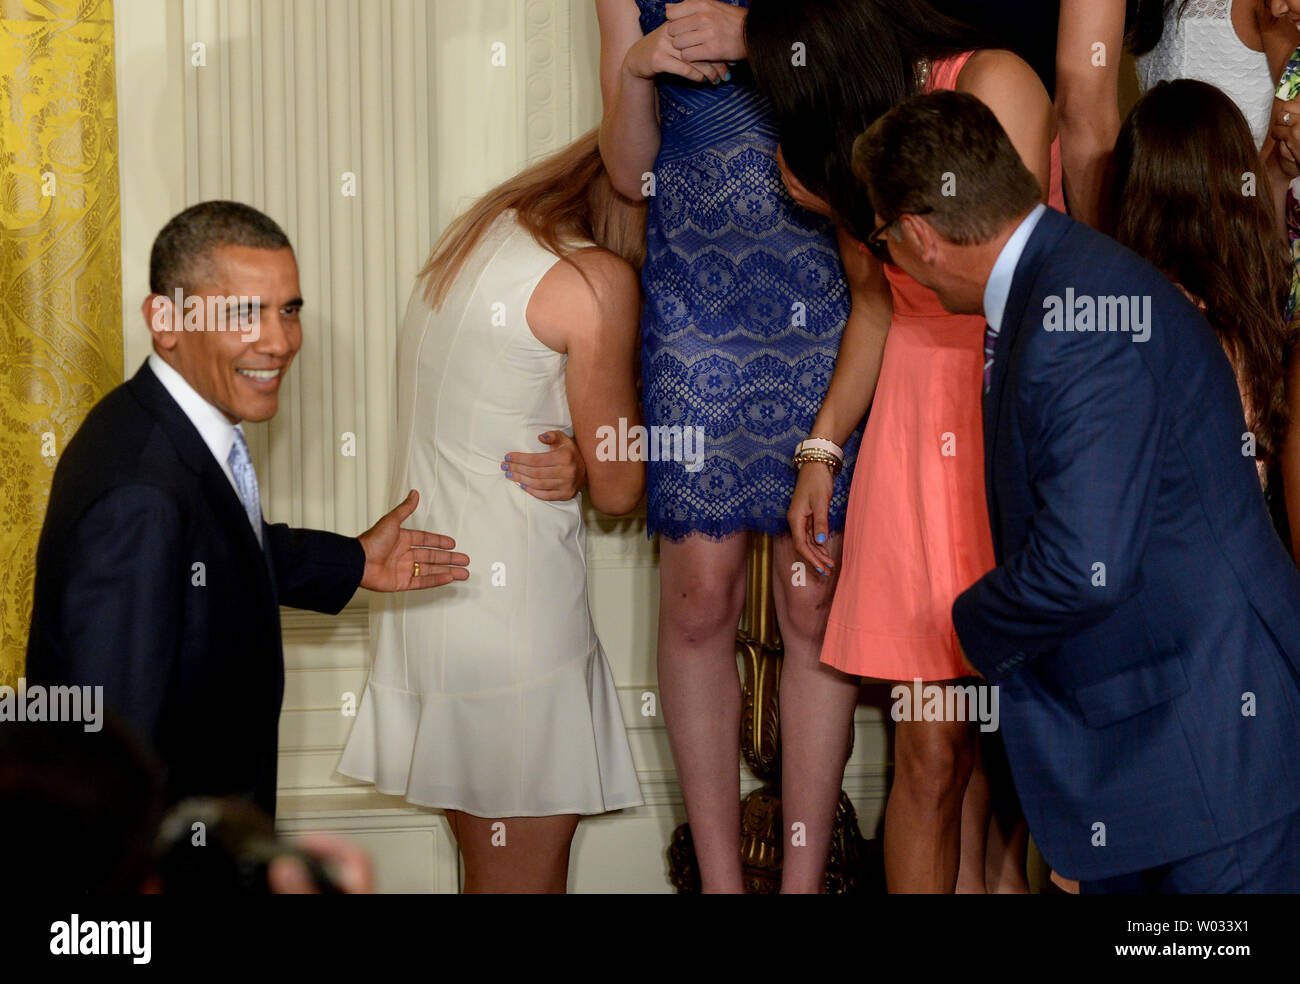 U.S. President Barack Obama smiles as he see that University of Connecticut star basketball player Stefanie Dolson (white dress) is all right but embarrassed after she slipped off the podium riser while Obama was shaking hands with head coachGeno Auriemma (R) during a presentation in the East Room of the White House in Washington, DC on June 9, 2014.  Obama honored both the women's and men's basketball teams from the University of Connecticut as they both won the NCAA collegiate basketball championships for the 2013-2014 season.    UPI/Pat Benic - Stock Image